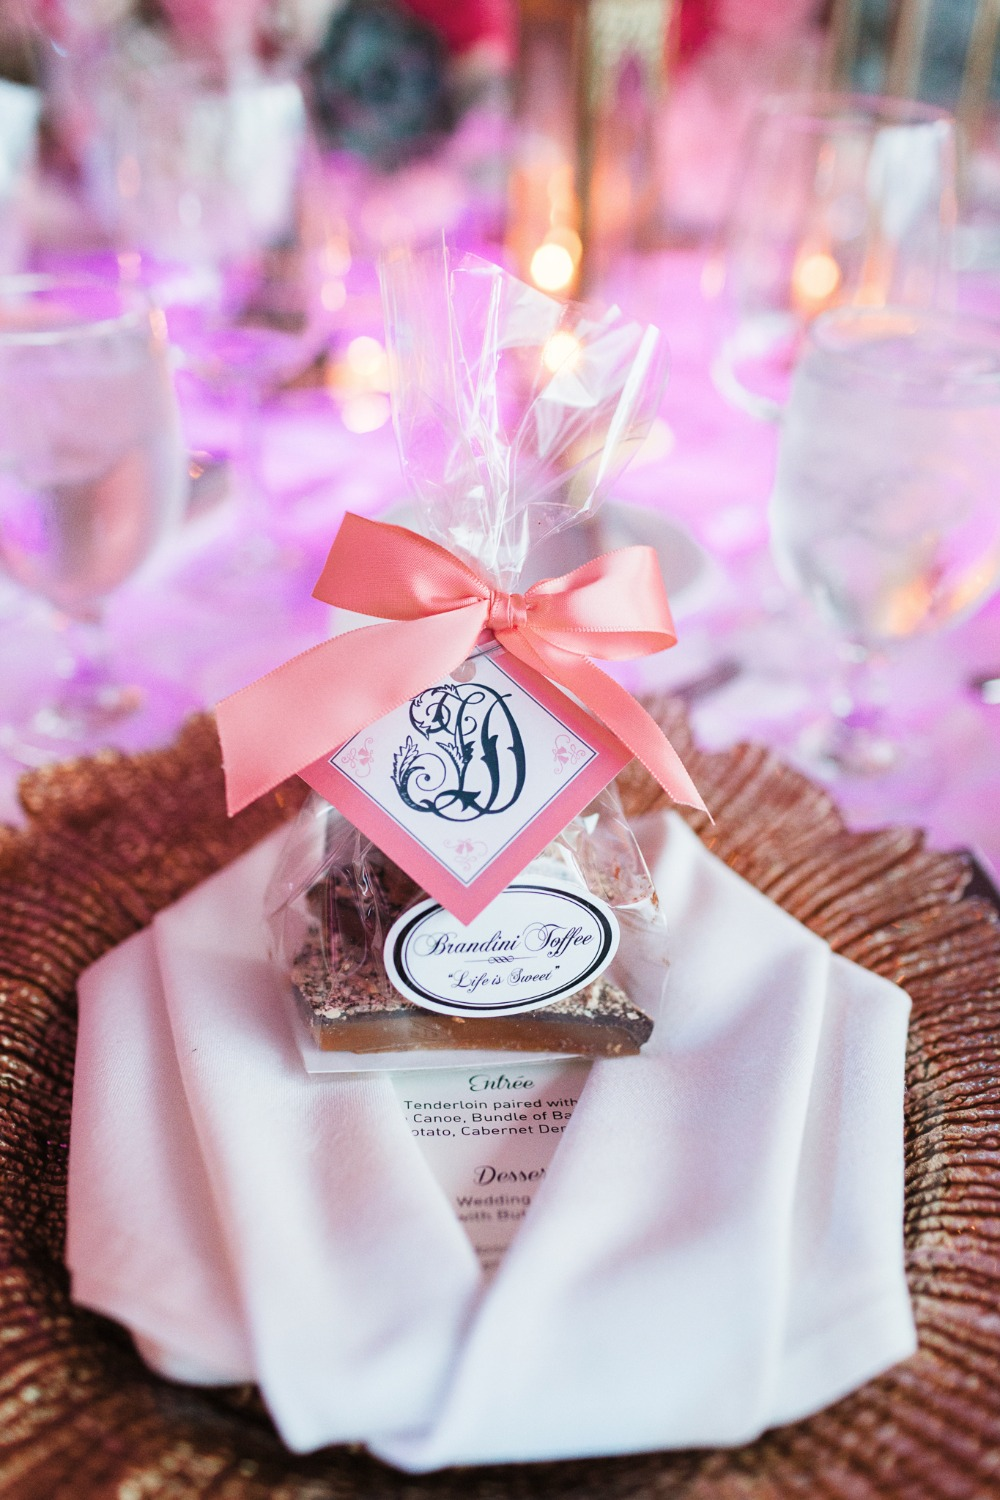 Toffee wedding favor